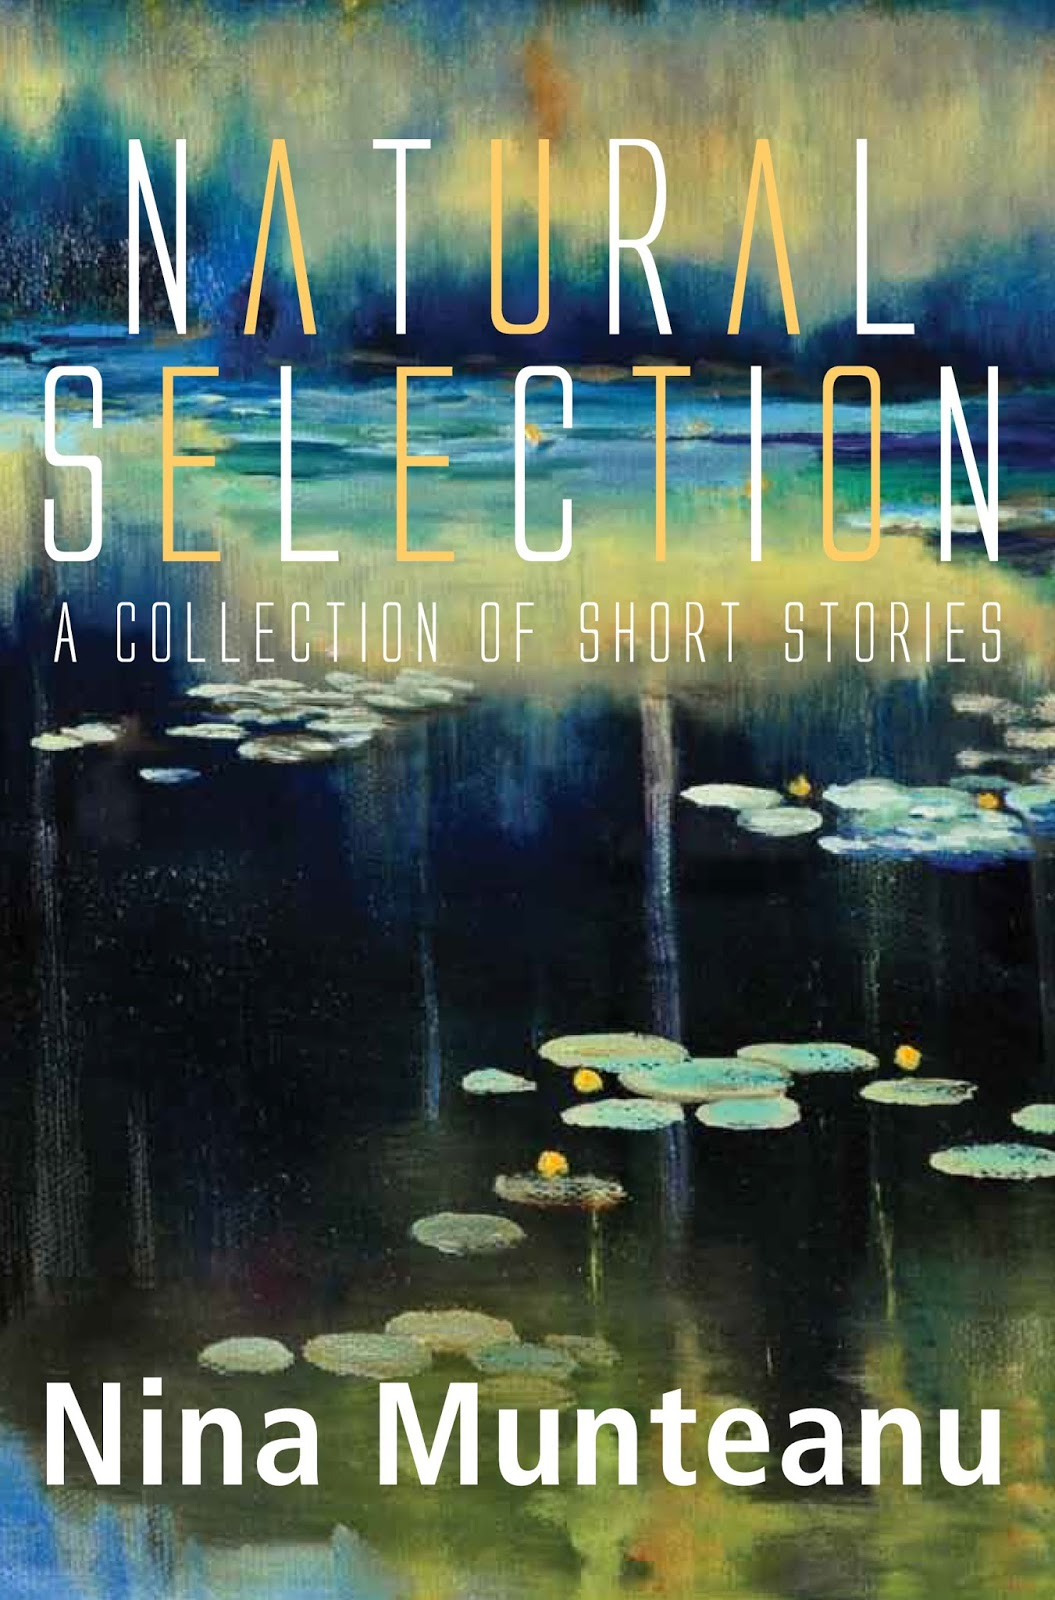 NaturalSelection frontHR Natural Selection by Nina Munteanu Now Out